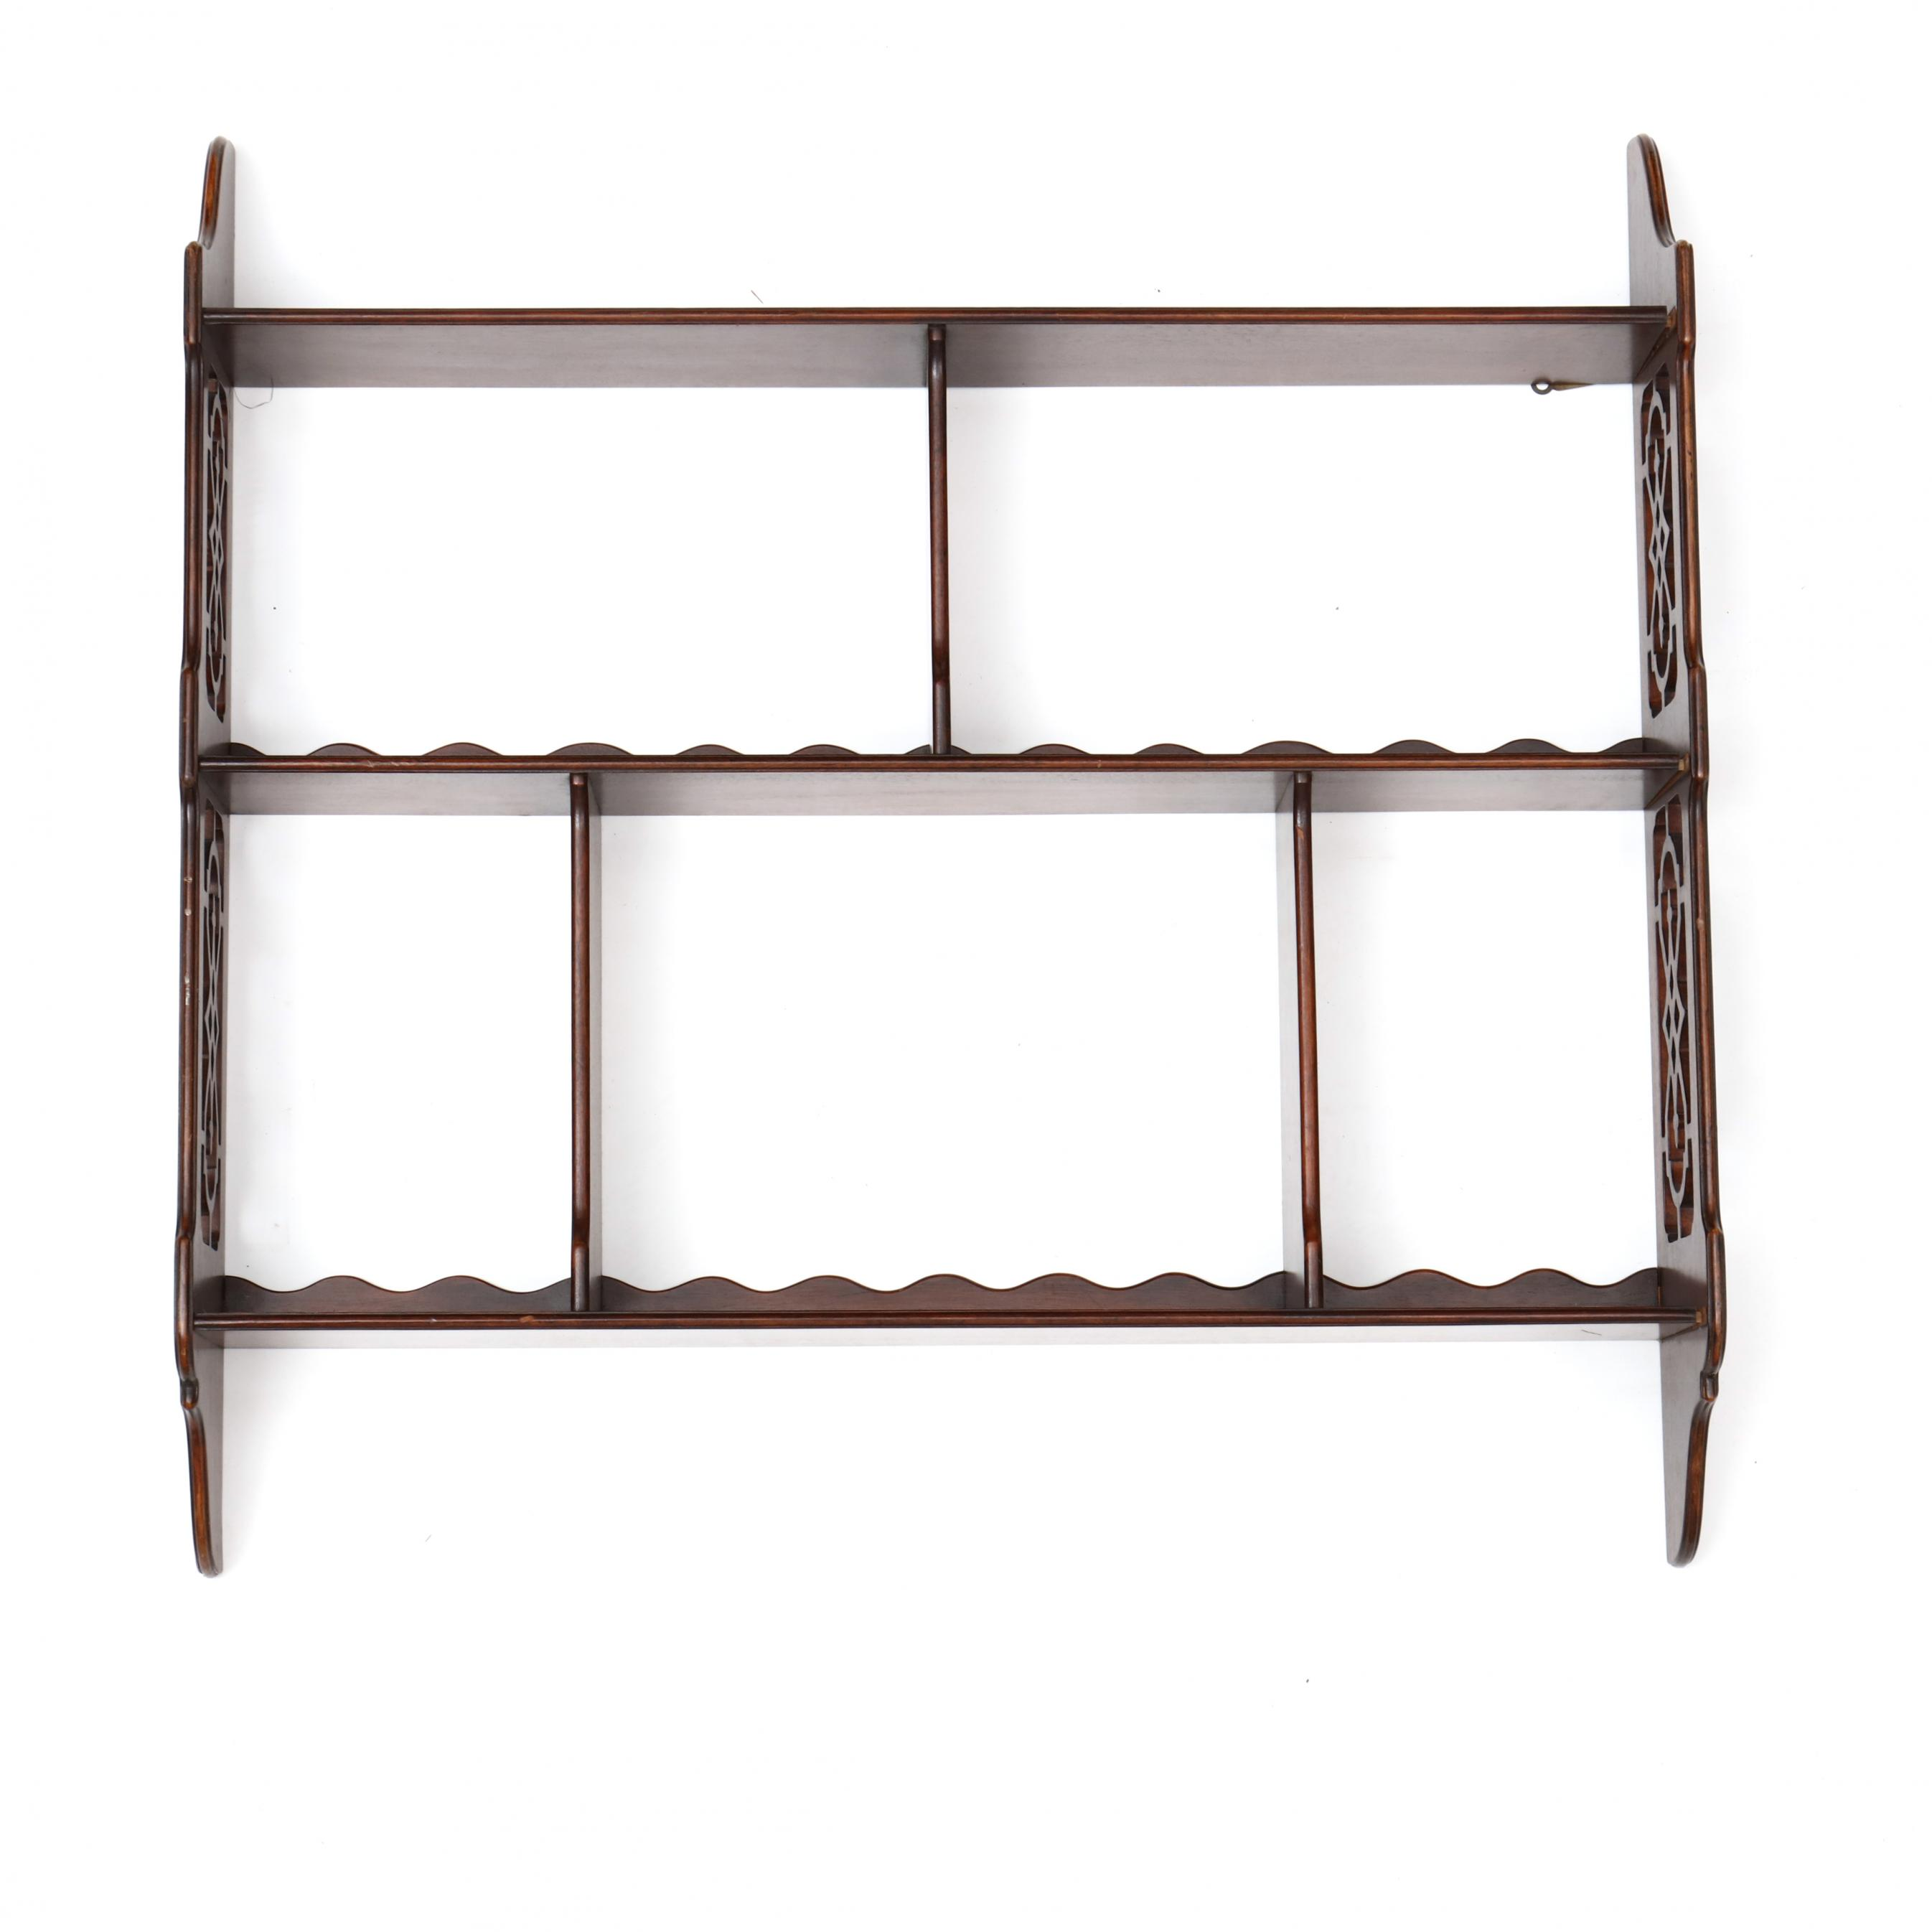 chippendale-style-mahogany-hanging-wall-shelf